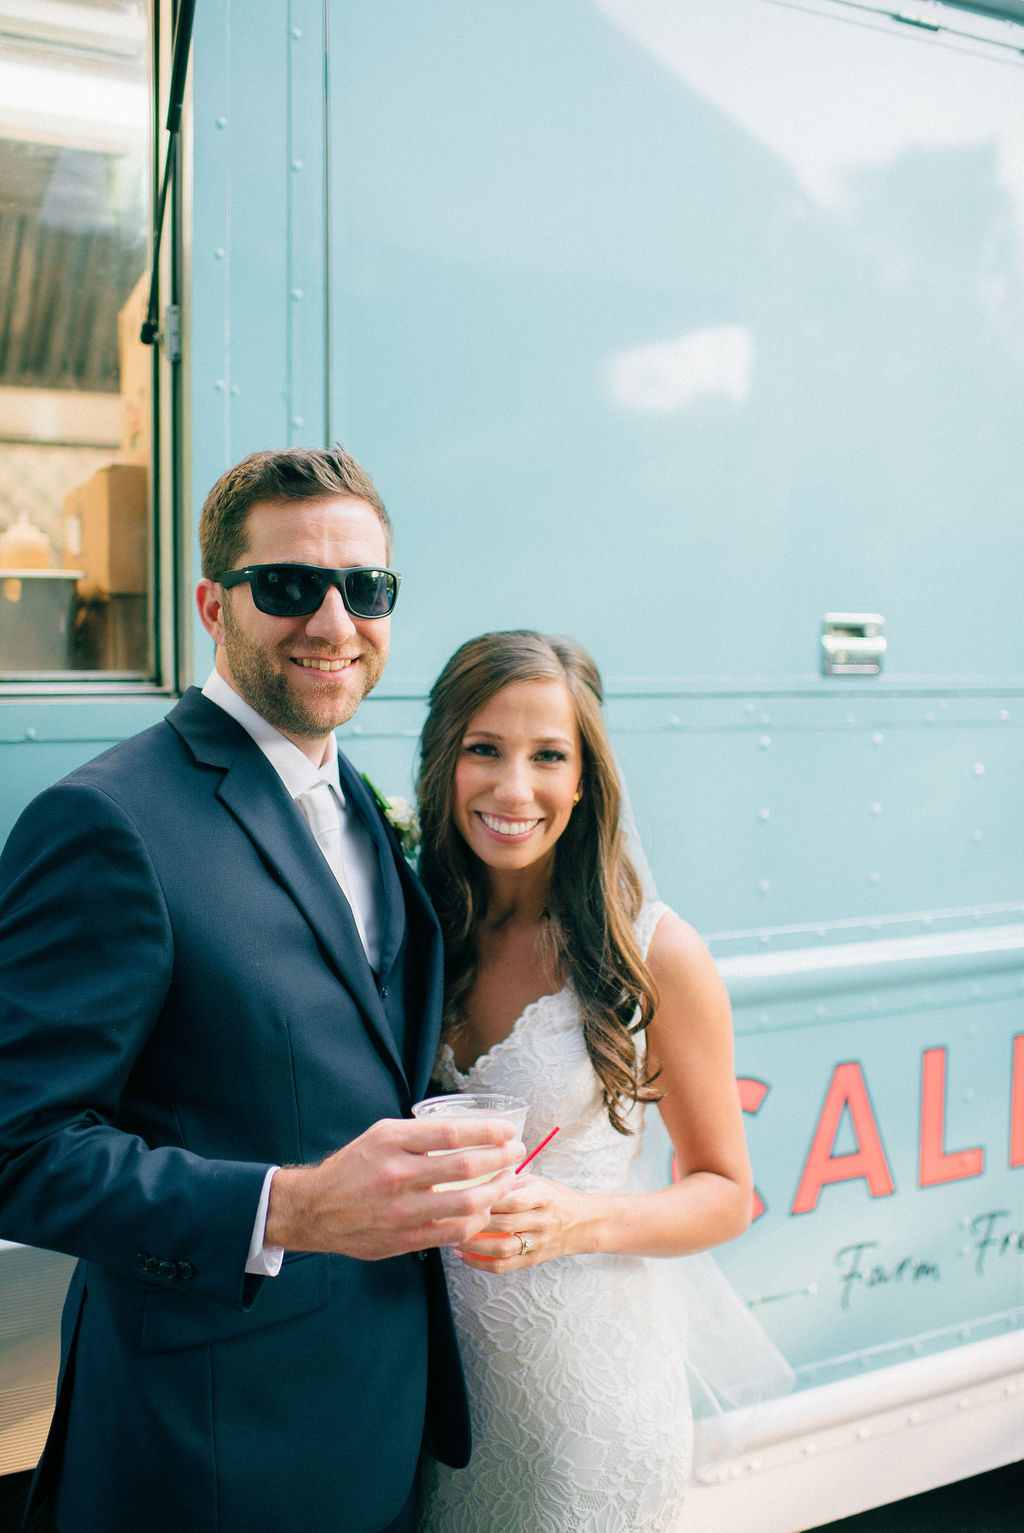 Laid-back Nashville wedding captured by Details Nashville